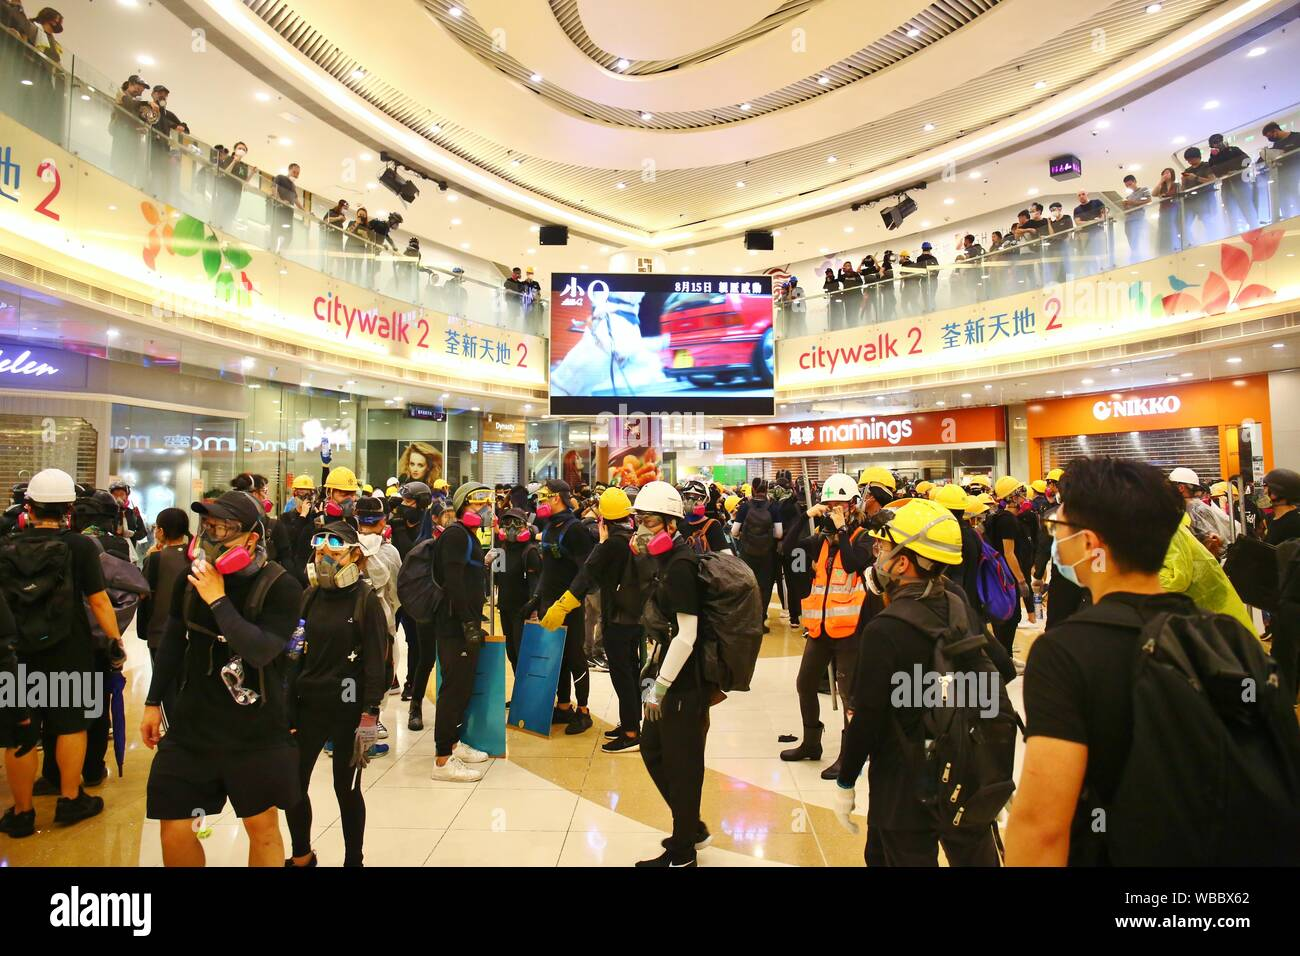 Hong Kong, China. 25th Aug, 2019. A peaceful rally turns violent with several clashes between protesters and police at Tsuen Wan. Protesters retreat back to the city mall when the police pushes forward to disperse the crowds Credit: Gonzales Photo/Alamy Live News Stock Photo